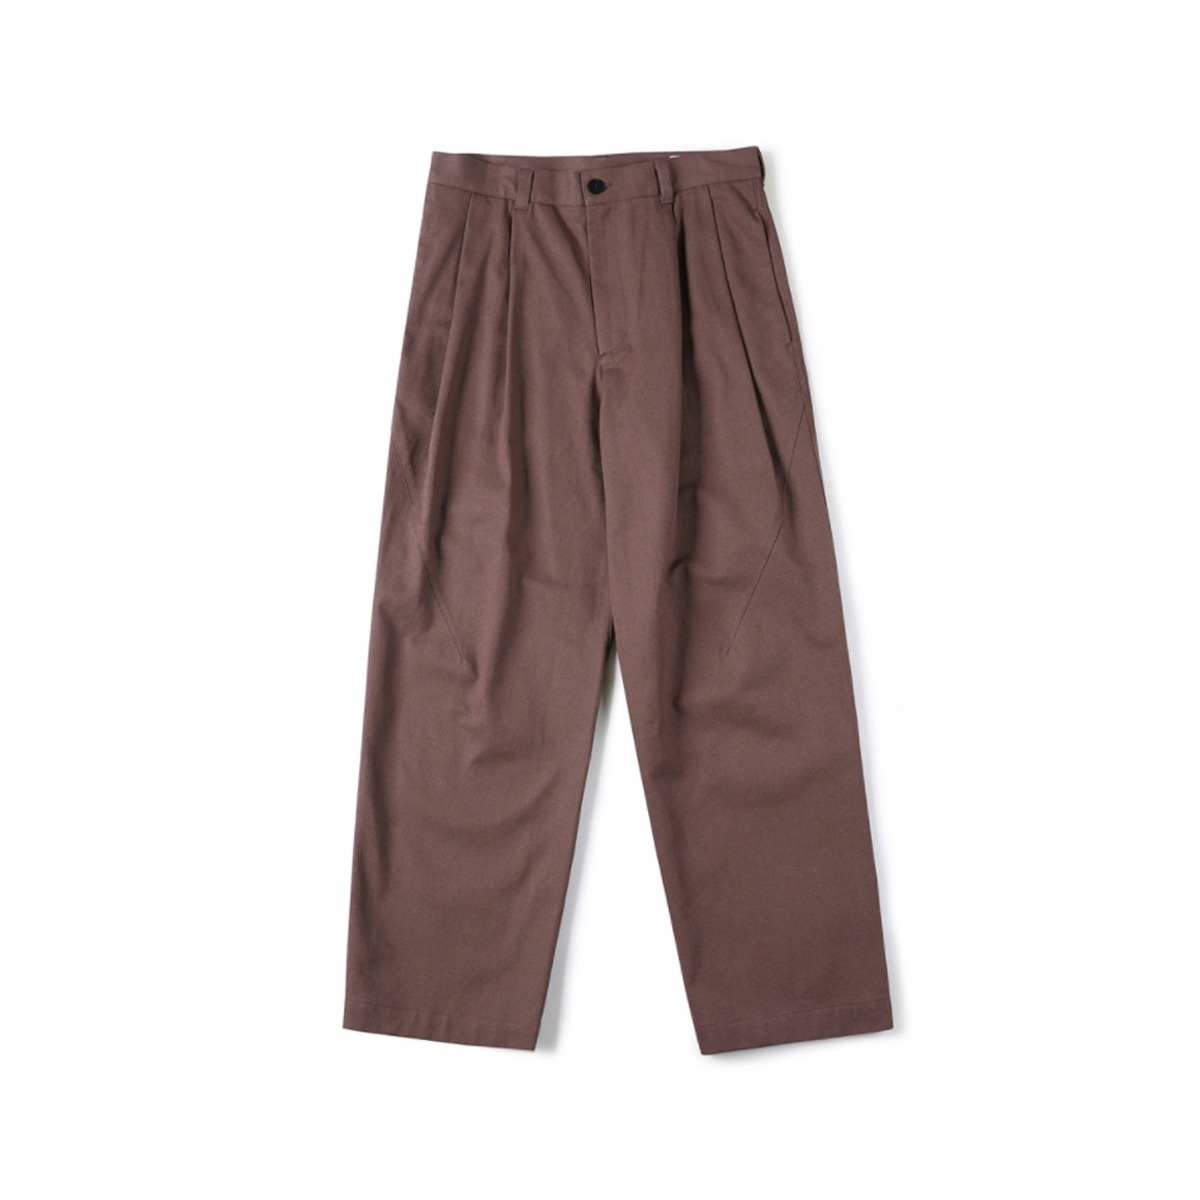 [SHIRTER] TWO TUCK JAR PANTS 'MARSALA'